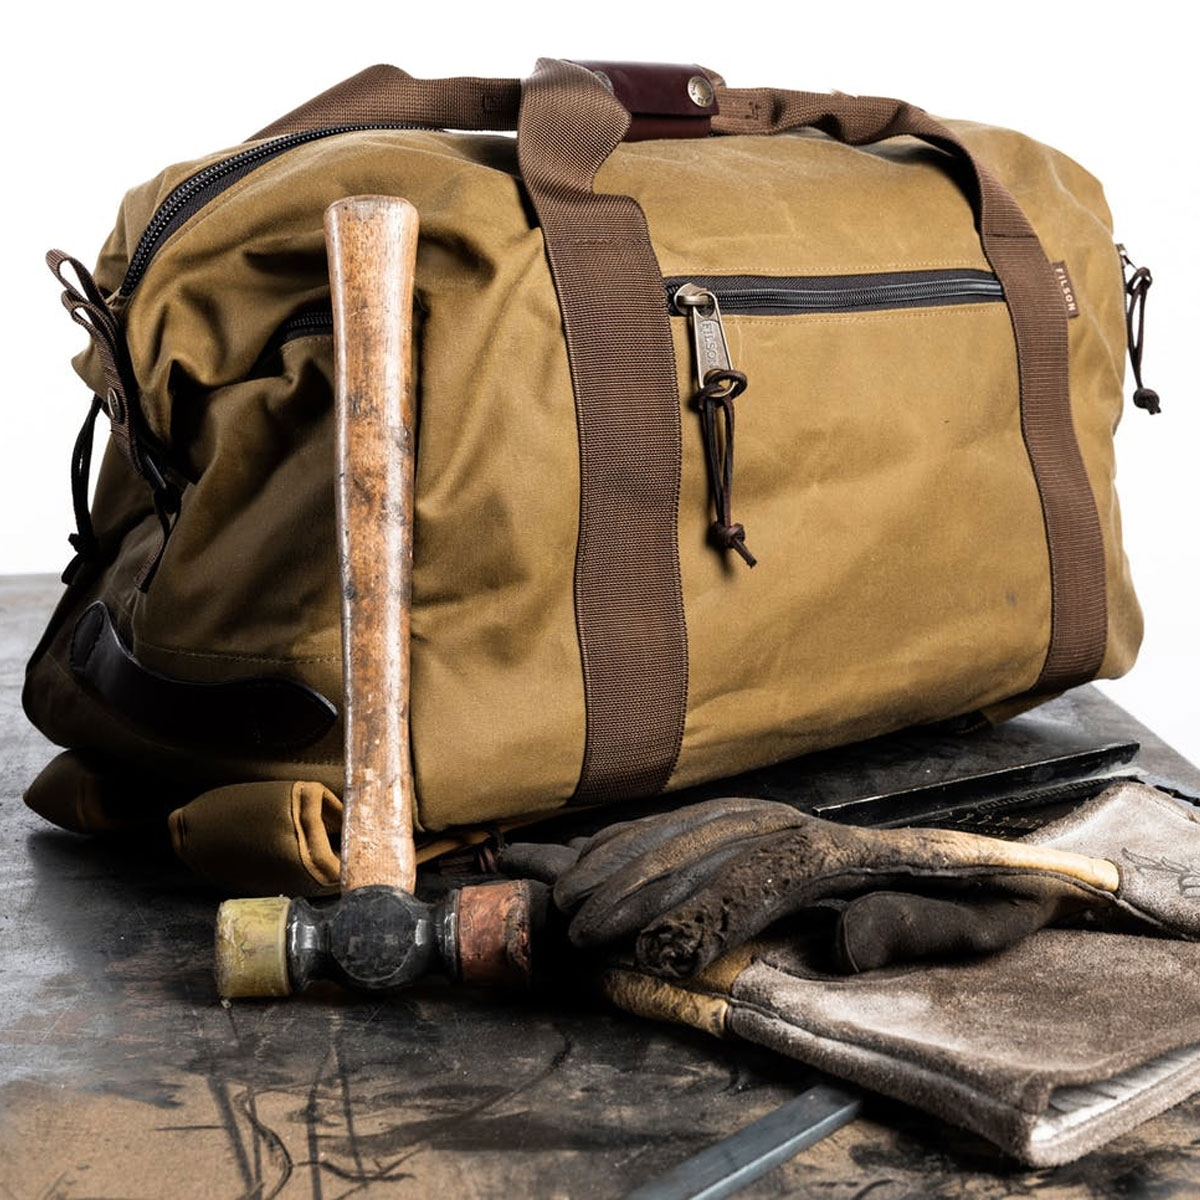 Filson Tin Cloth Duffle Pack Dark Tan/Brown, is overbuilt to go anywhere in any weather